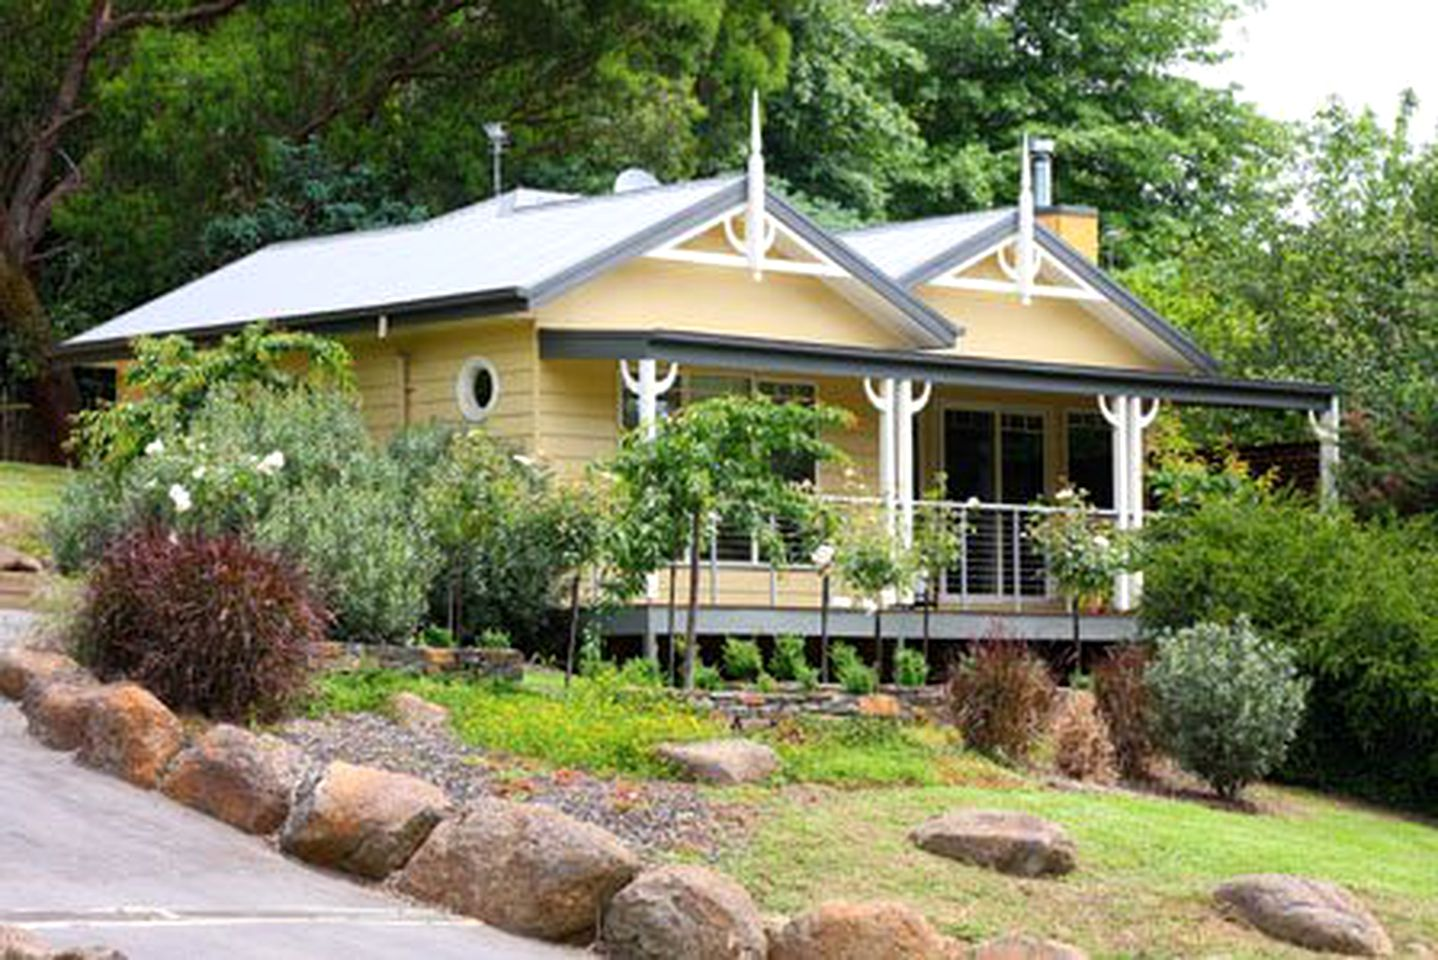 Cottages (Yarra Valley, Victoria, Australia)